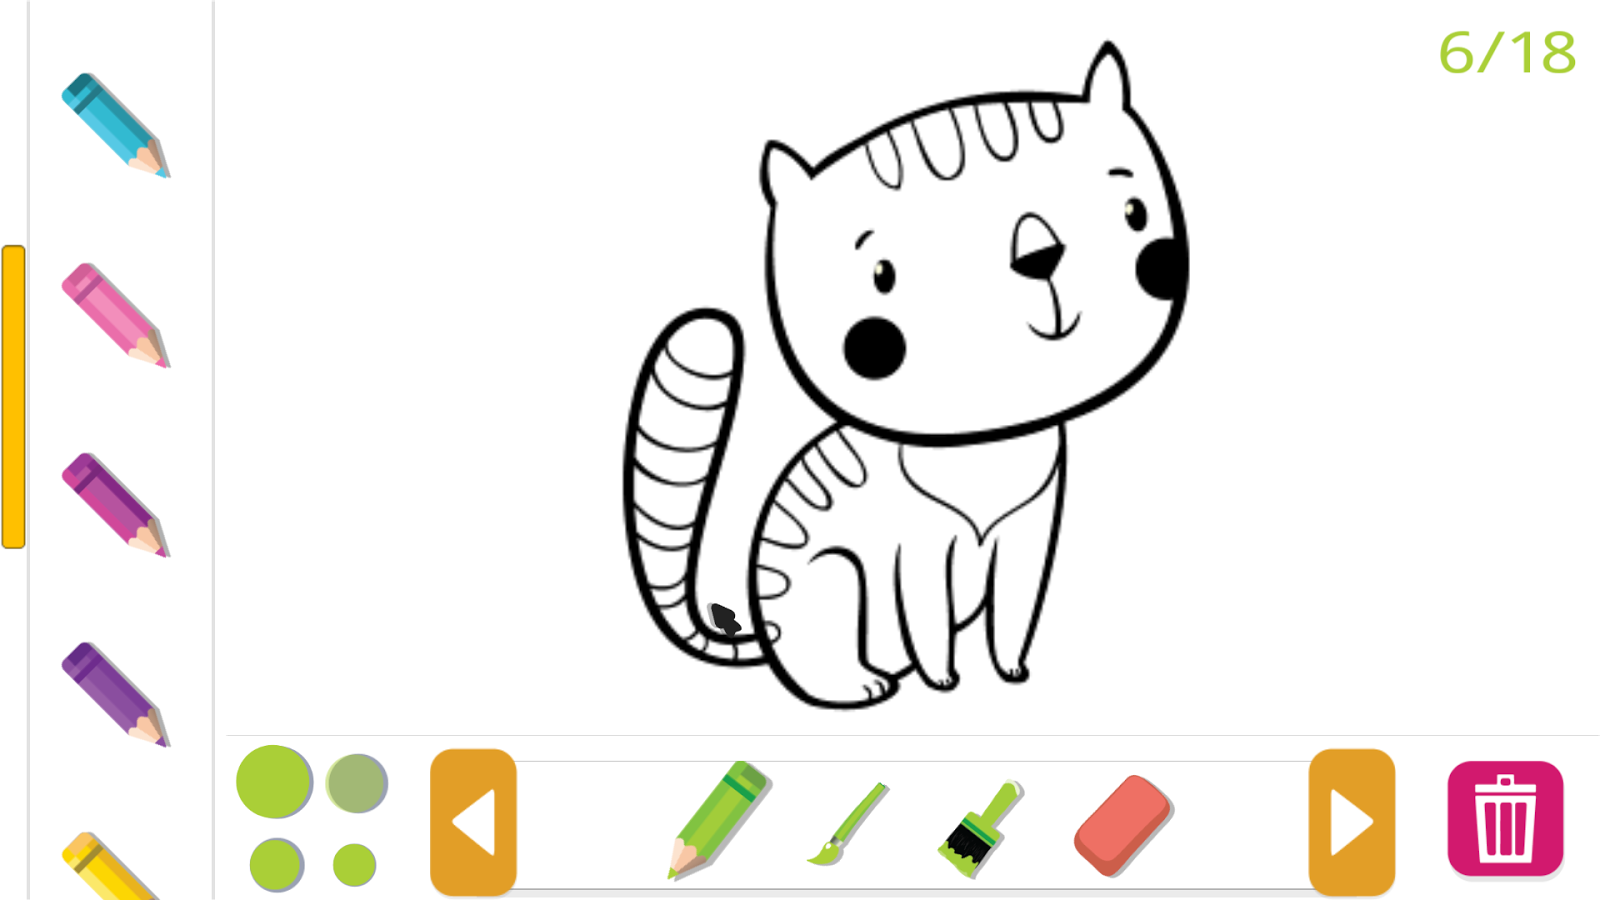 Free Draw for kids - Android Apps on Google Play